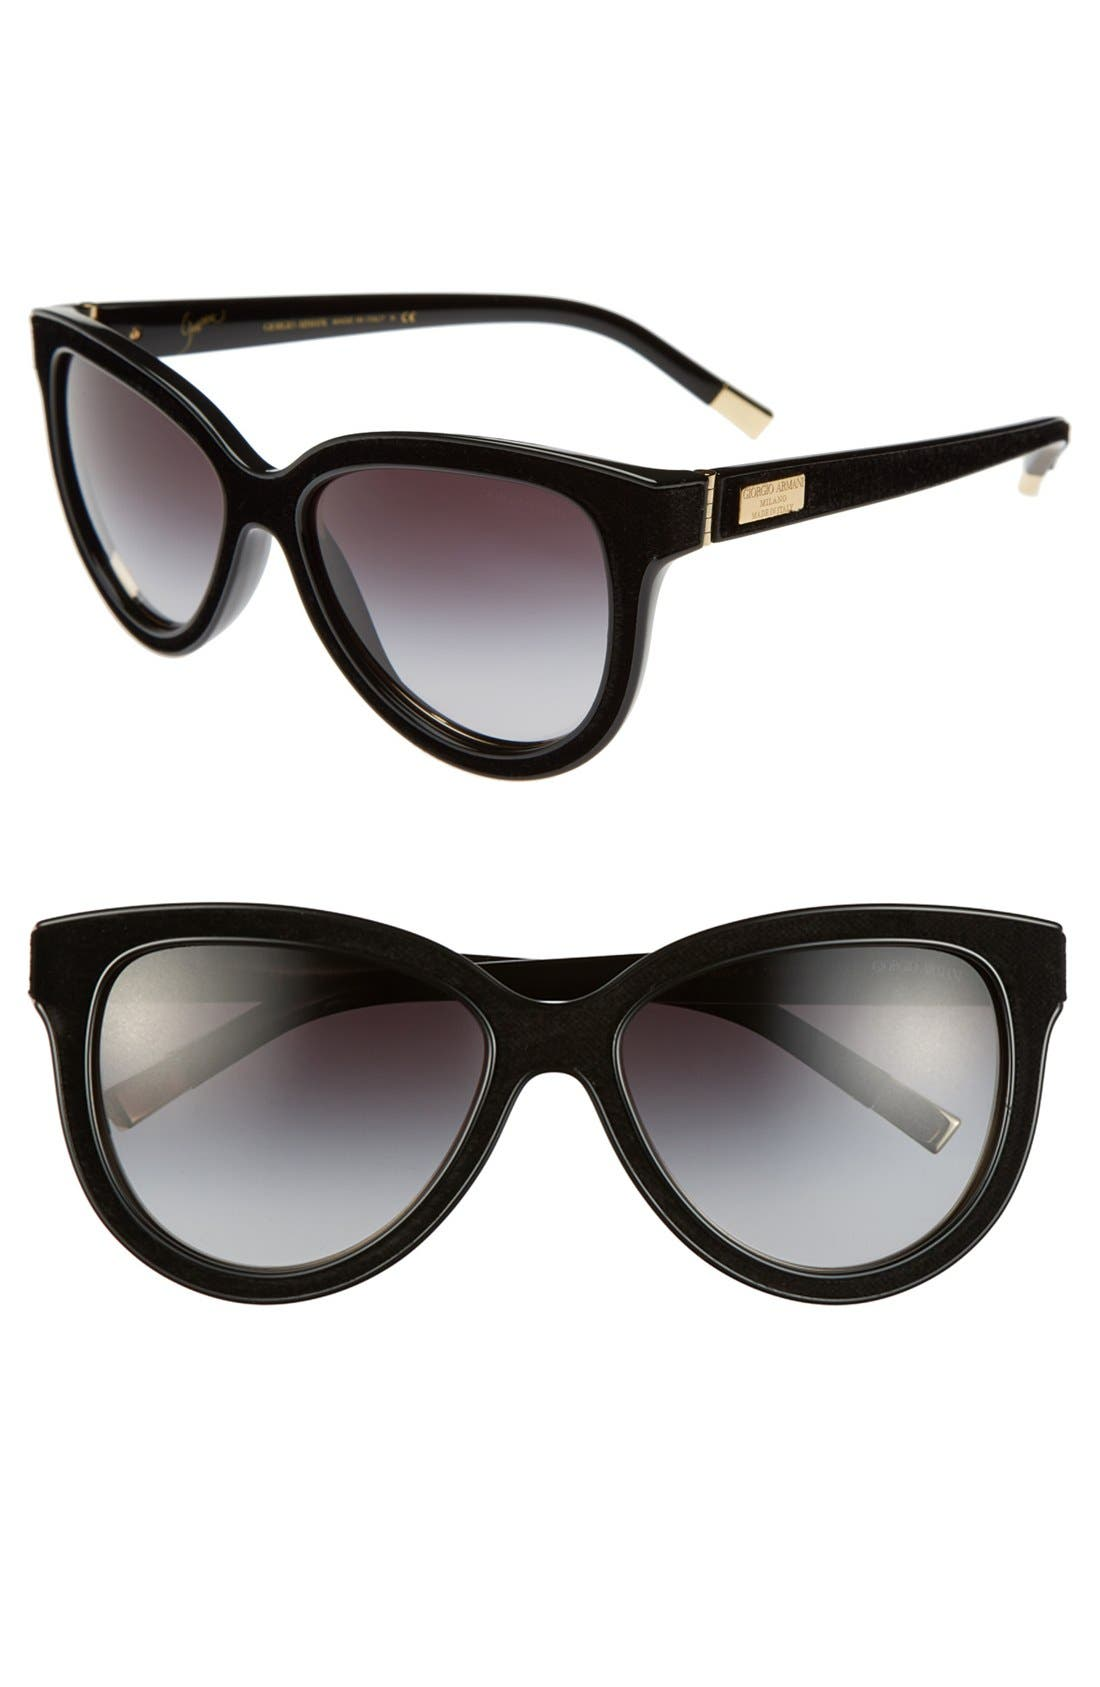 Alternate Image 1 Selected - Giorgio Armani 'Garçonne' 57mm Cat Eye Sunglasses